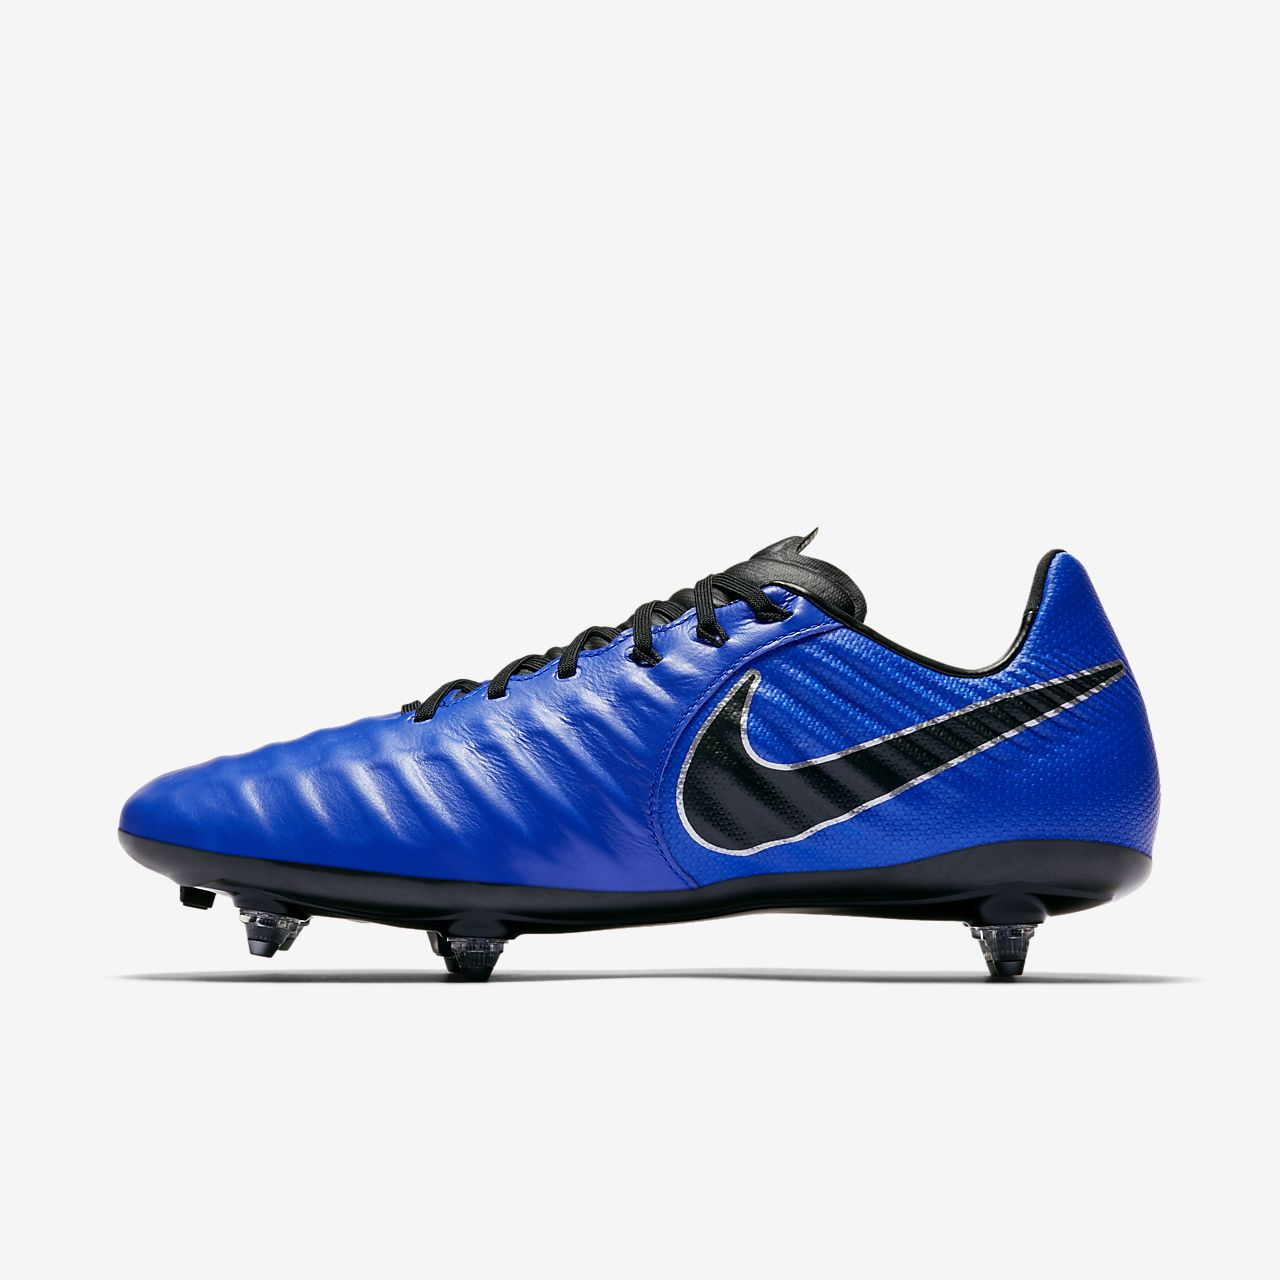 dc0523d118f Nike Tiempo Legend VII Pro Soft-Ground Football Boot. Nike.com AU